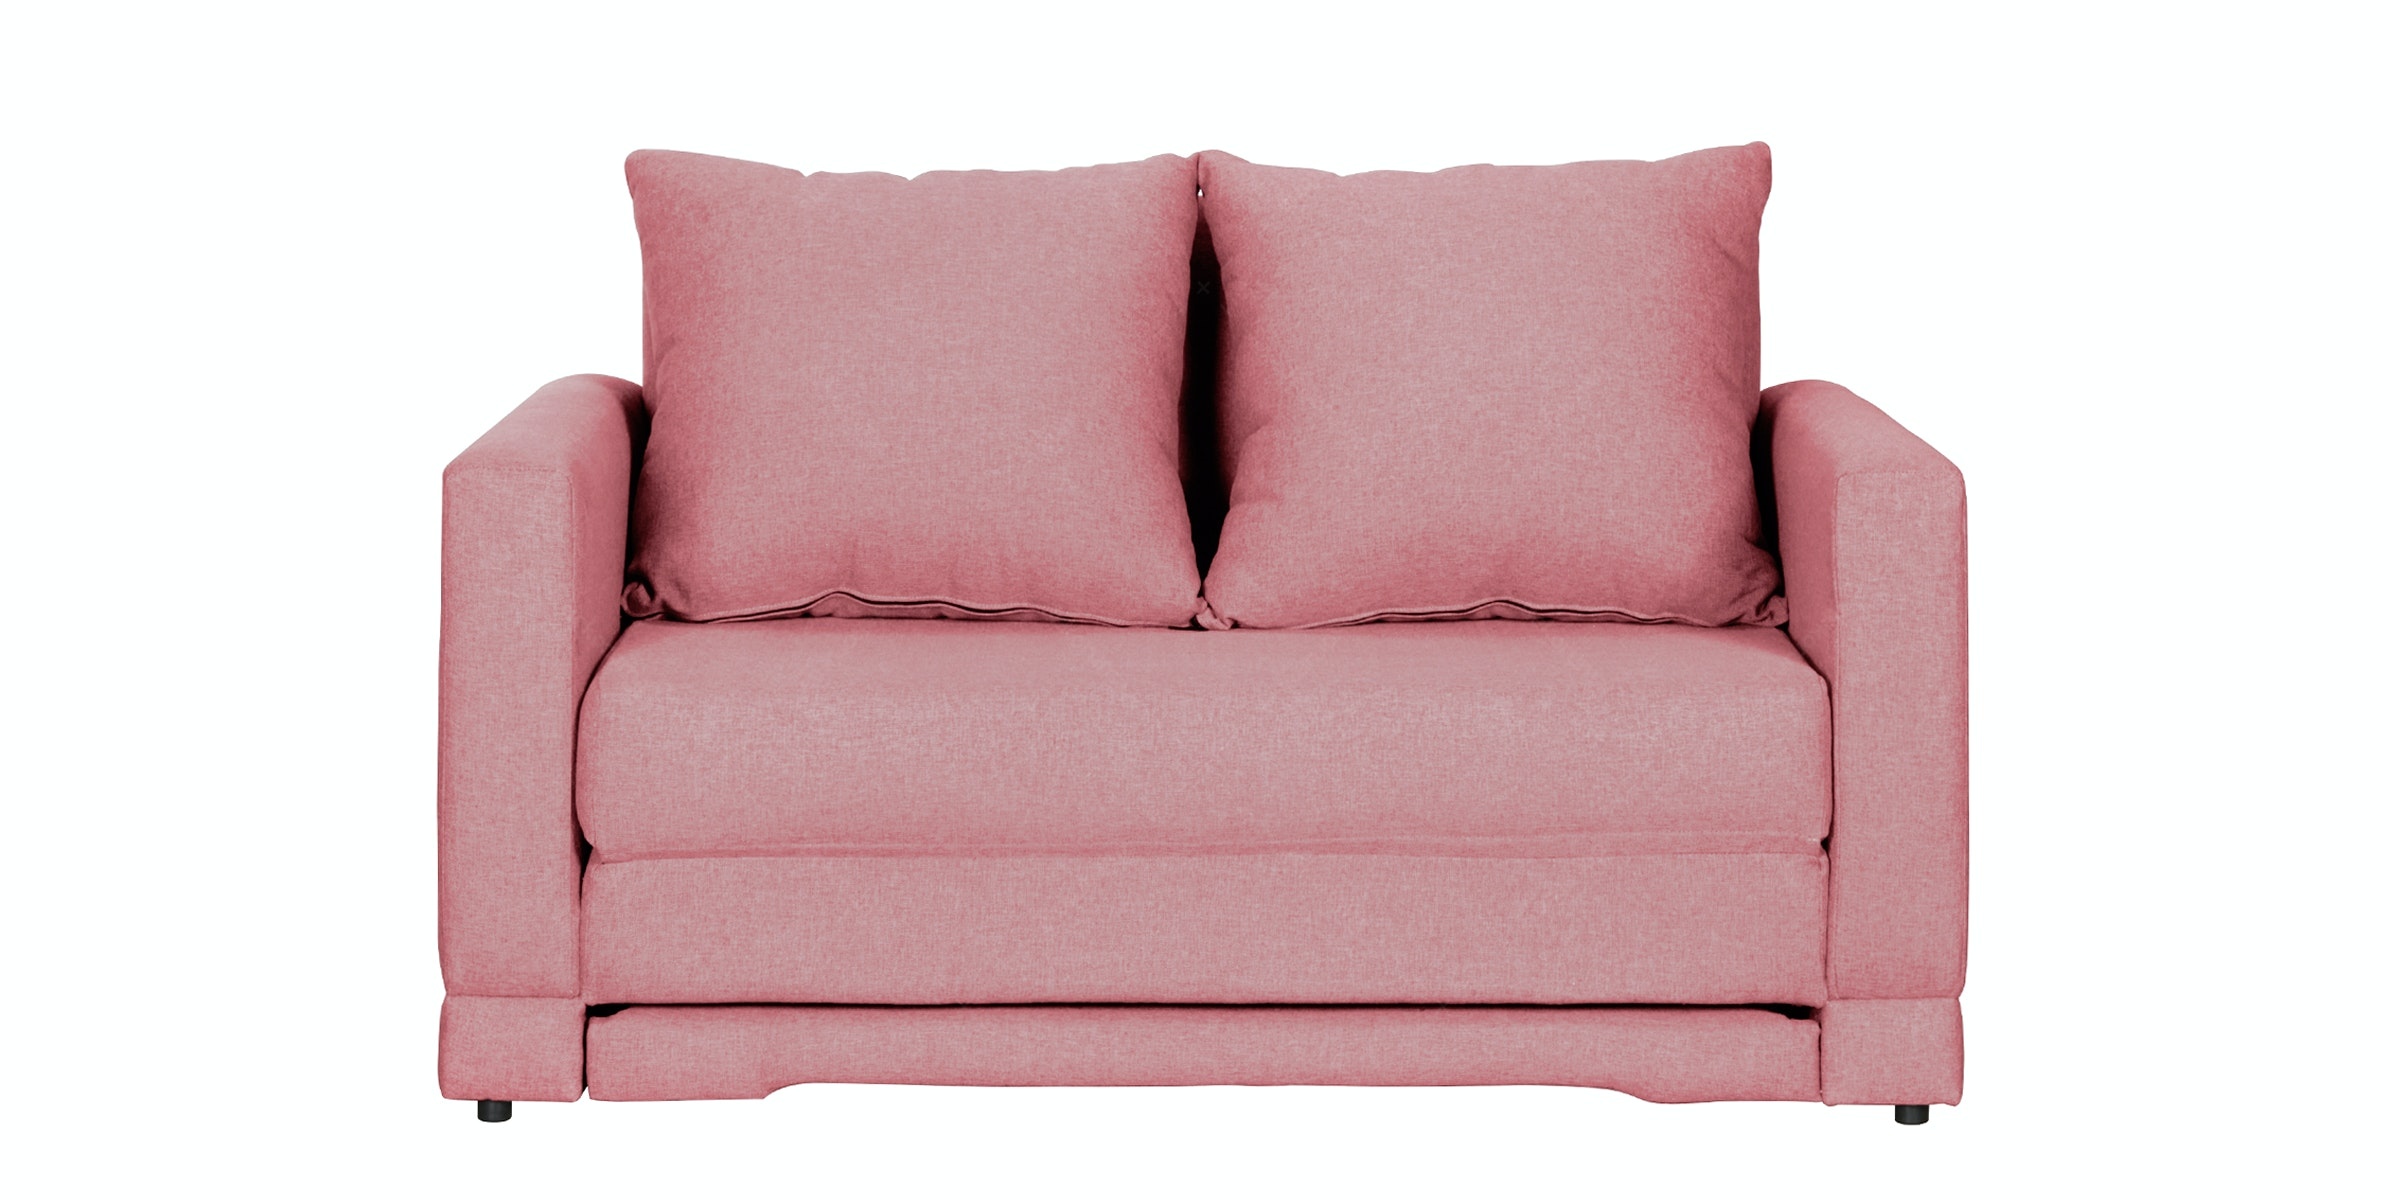 Voda Collection Fernando Sofa Bed Pink Flamingo